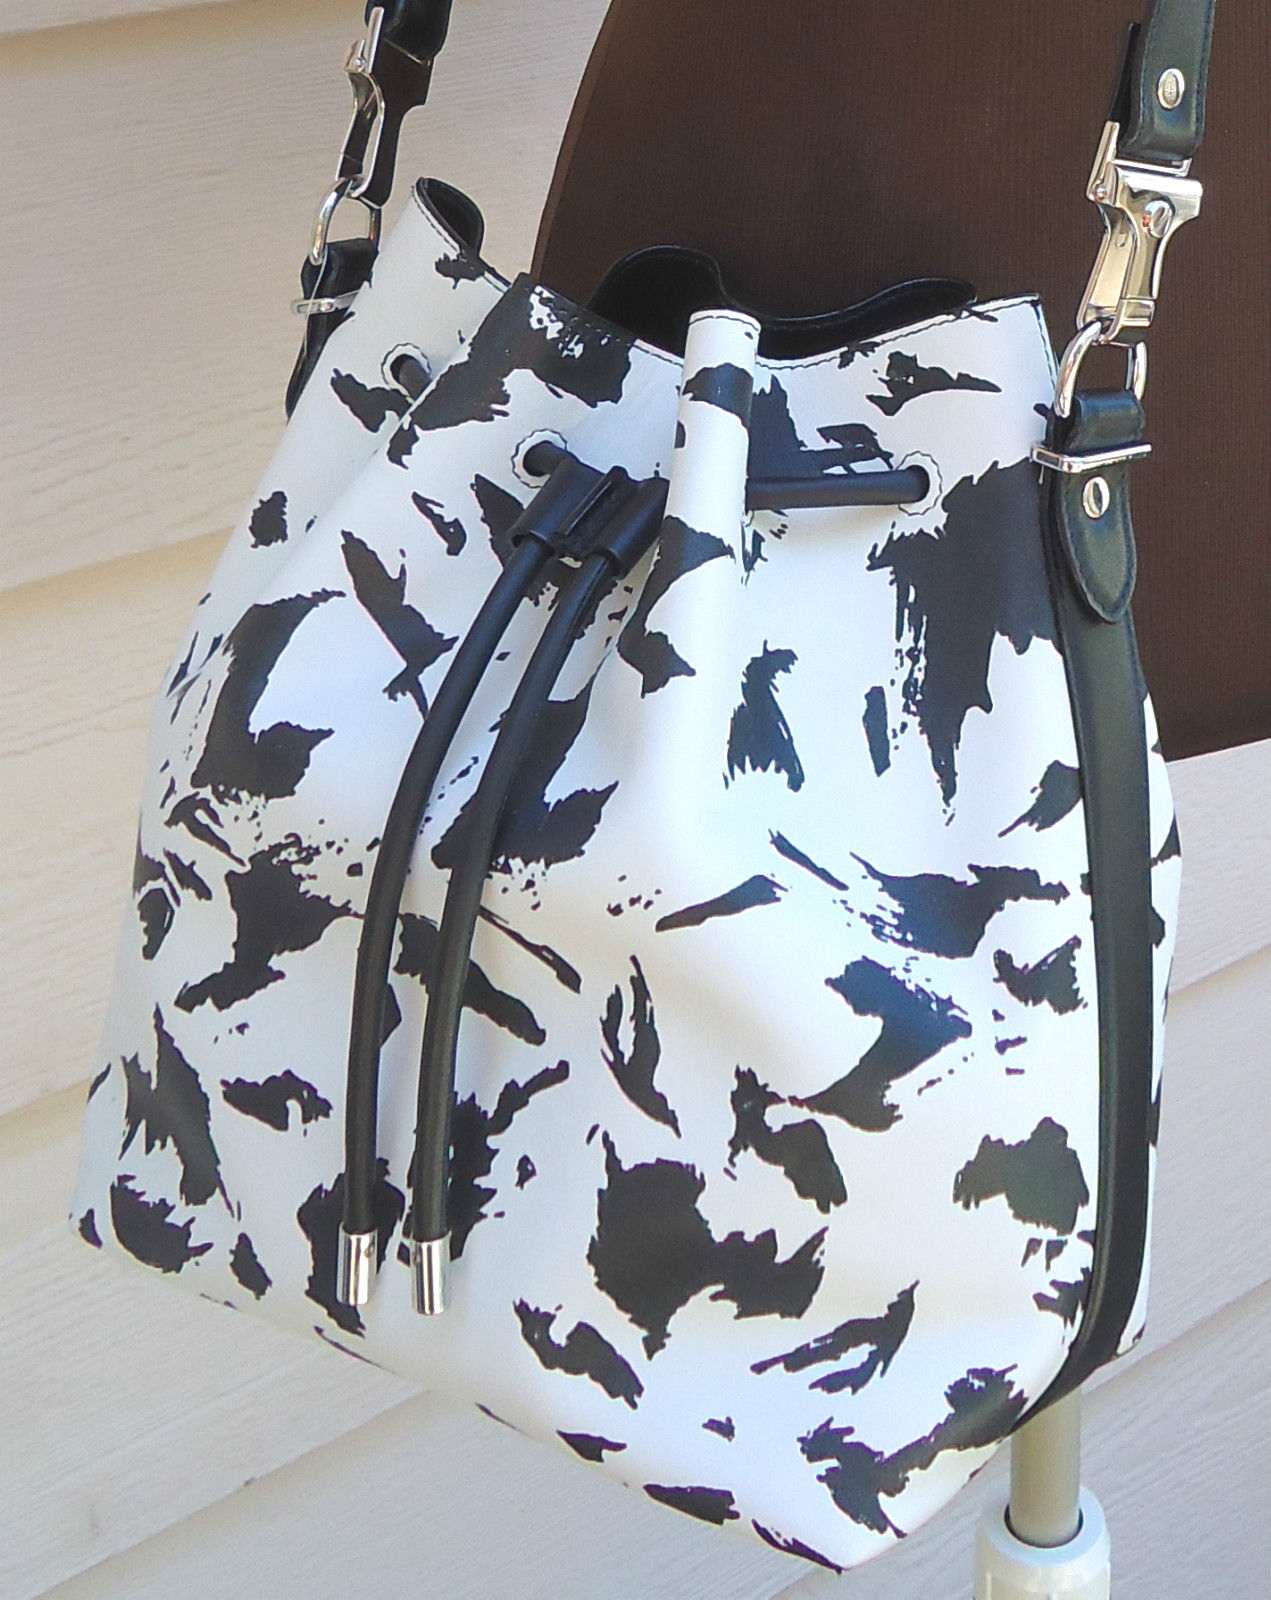 NEW $1425  Proenza Schouler Medium Feather Print Bucket Bag Black White Leather